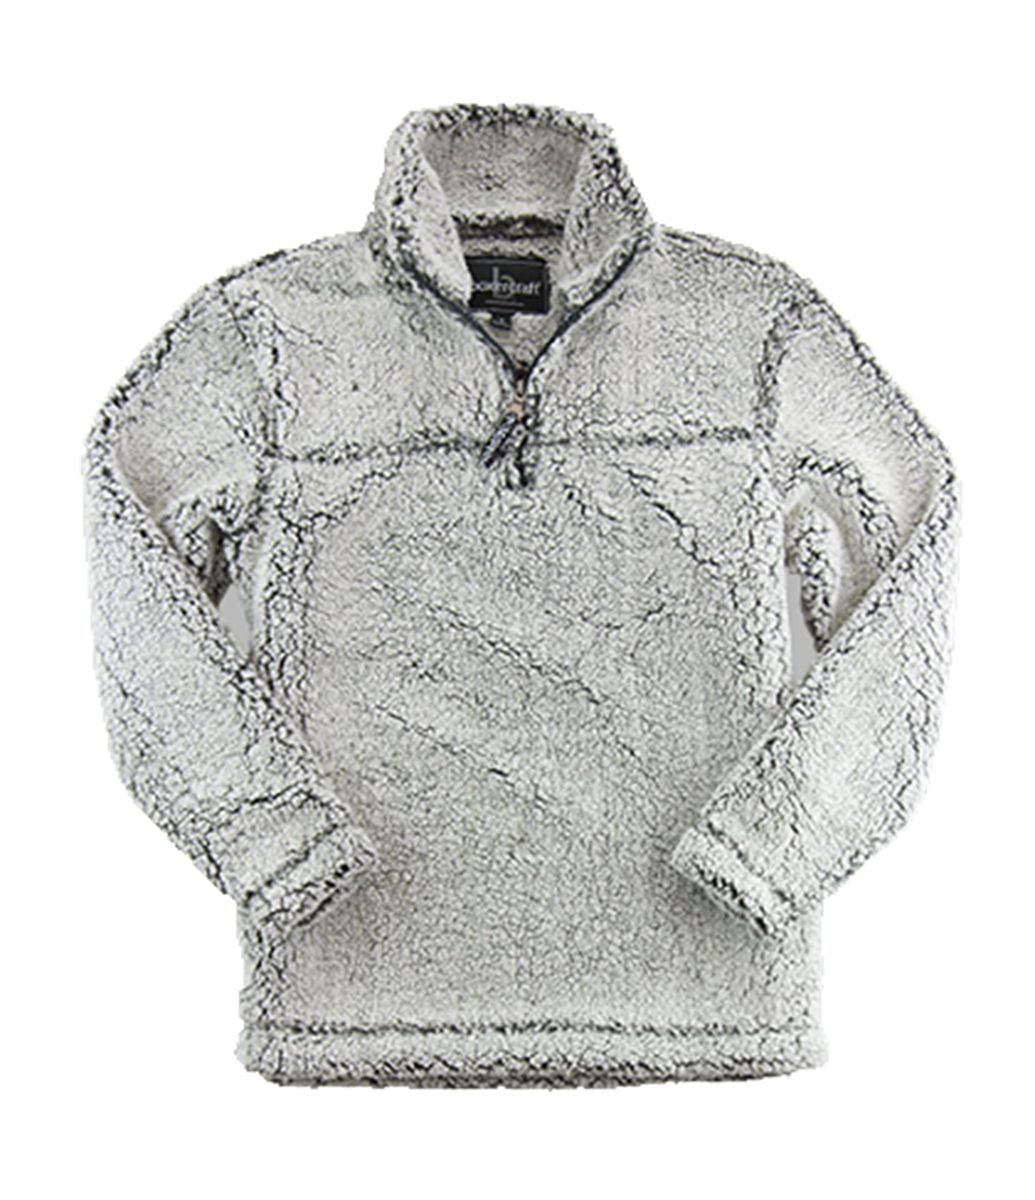 boxercraft Adult Super Soft 1/4 Zip Sherpa Pullover, Frosty Grey, 3XL